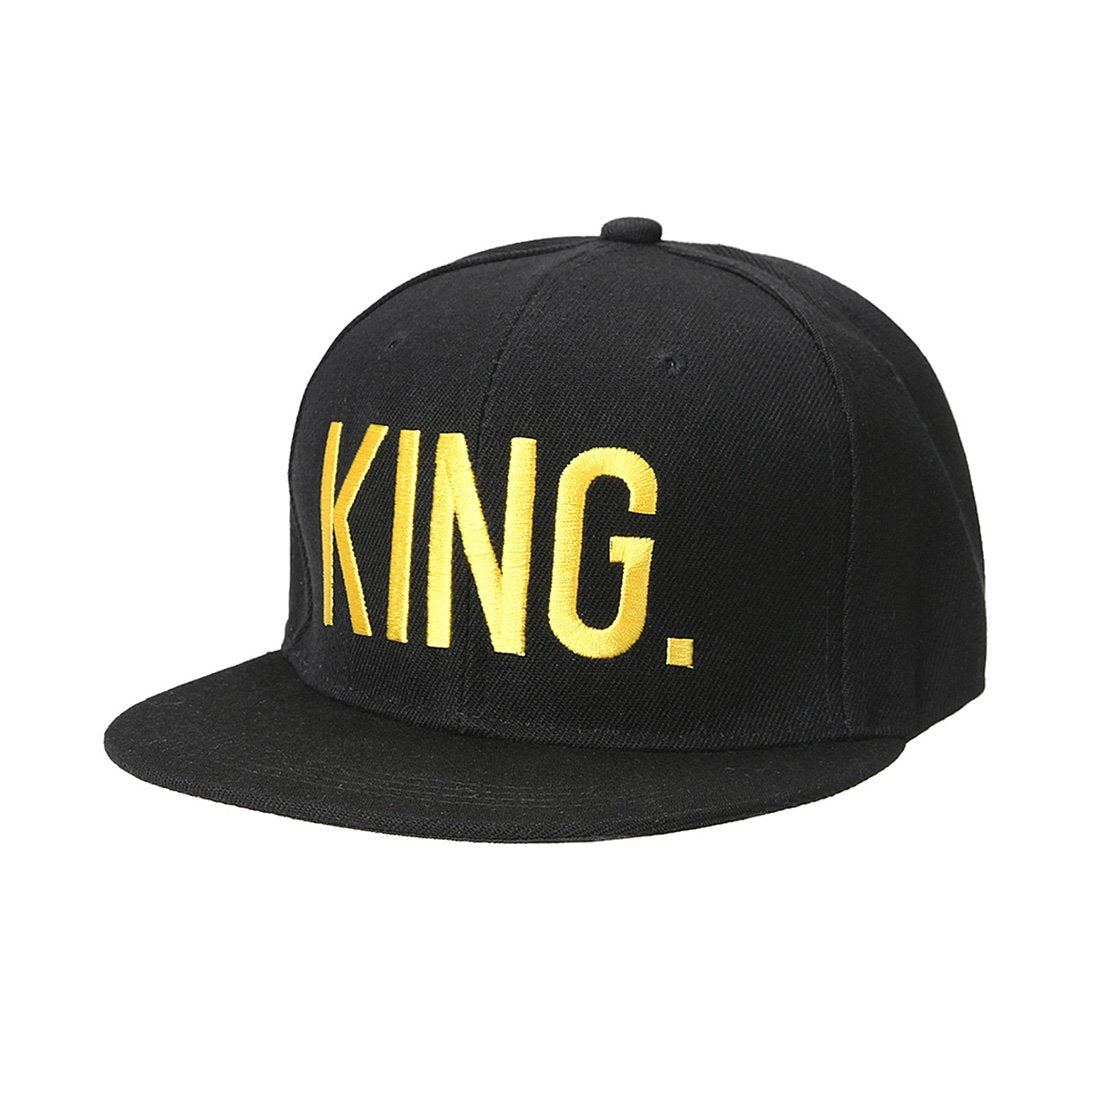 King Embroidered Baseball Designer cap